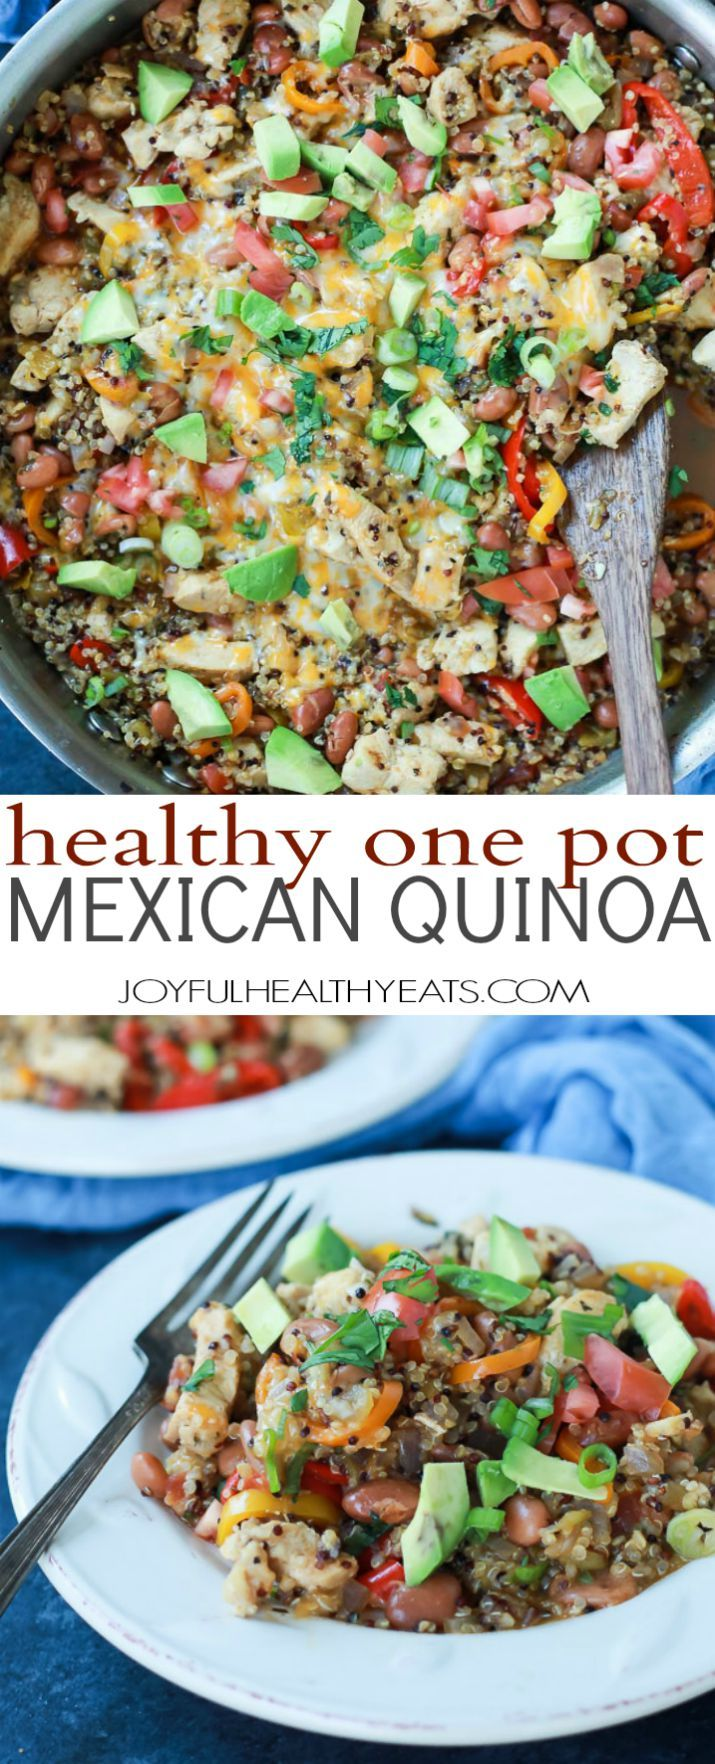 brs 1000 Healthy One Pot Mexican Quinoa Casserole   light  easy to make  packed with nutrients and flavor  and only 290 calories a serving  Everything is made all in the same pan  you  39 ll love how easy this recipe is    joyfulhealthyeats com  glutenfree